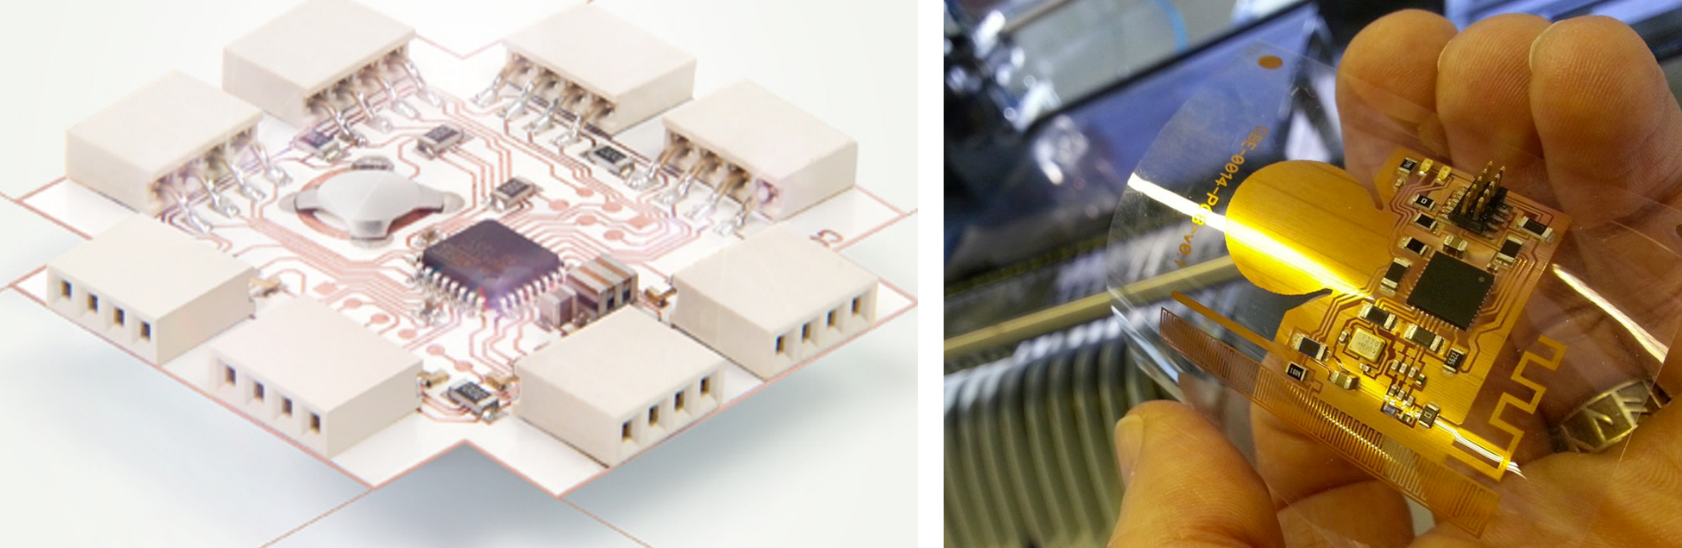 Design Hmi Flexible Hybrid Electronics Telephone Circuit Hands Over Tech This Was Achieved By Replacing The Traditional Board With A Thin Plastic Sheet Eliminating Microcontroller Packaging